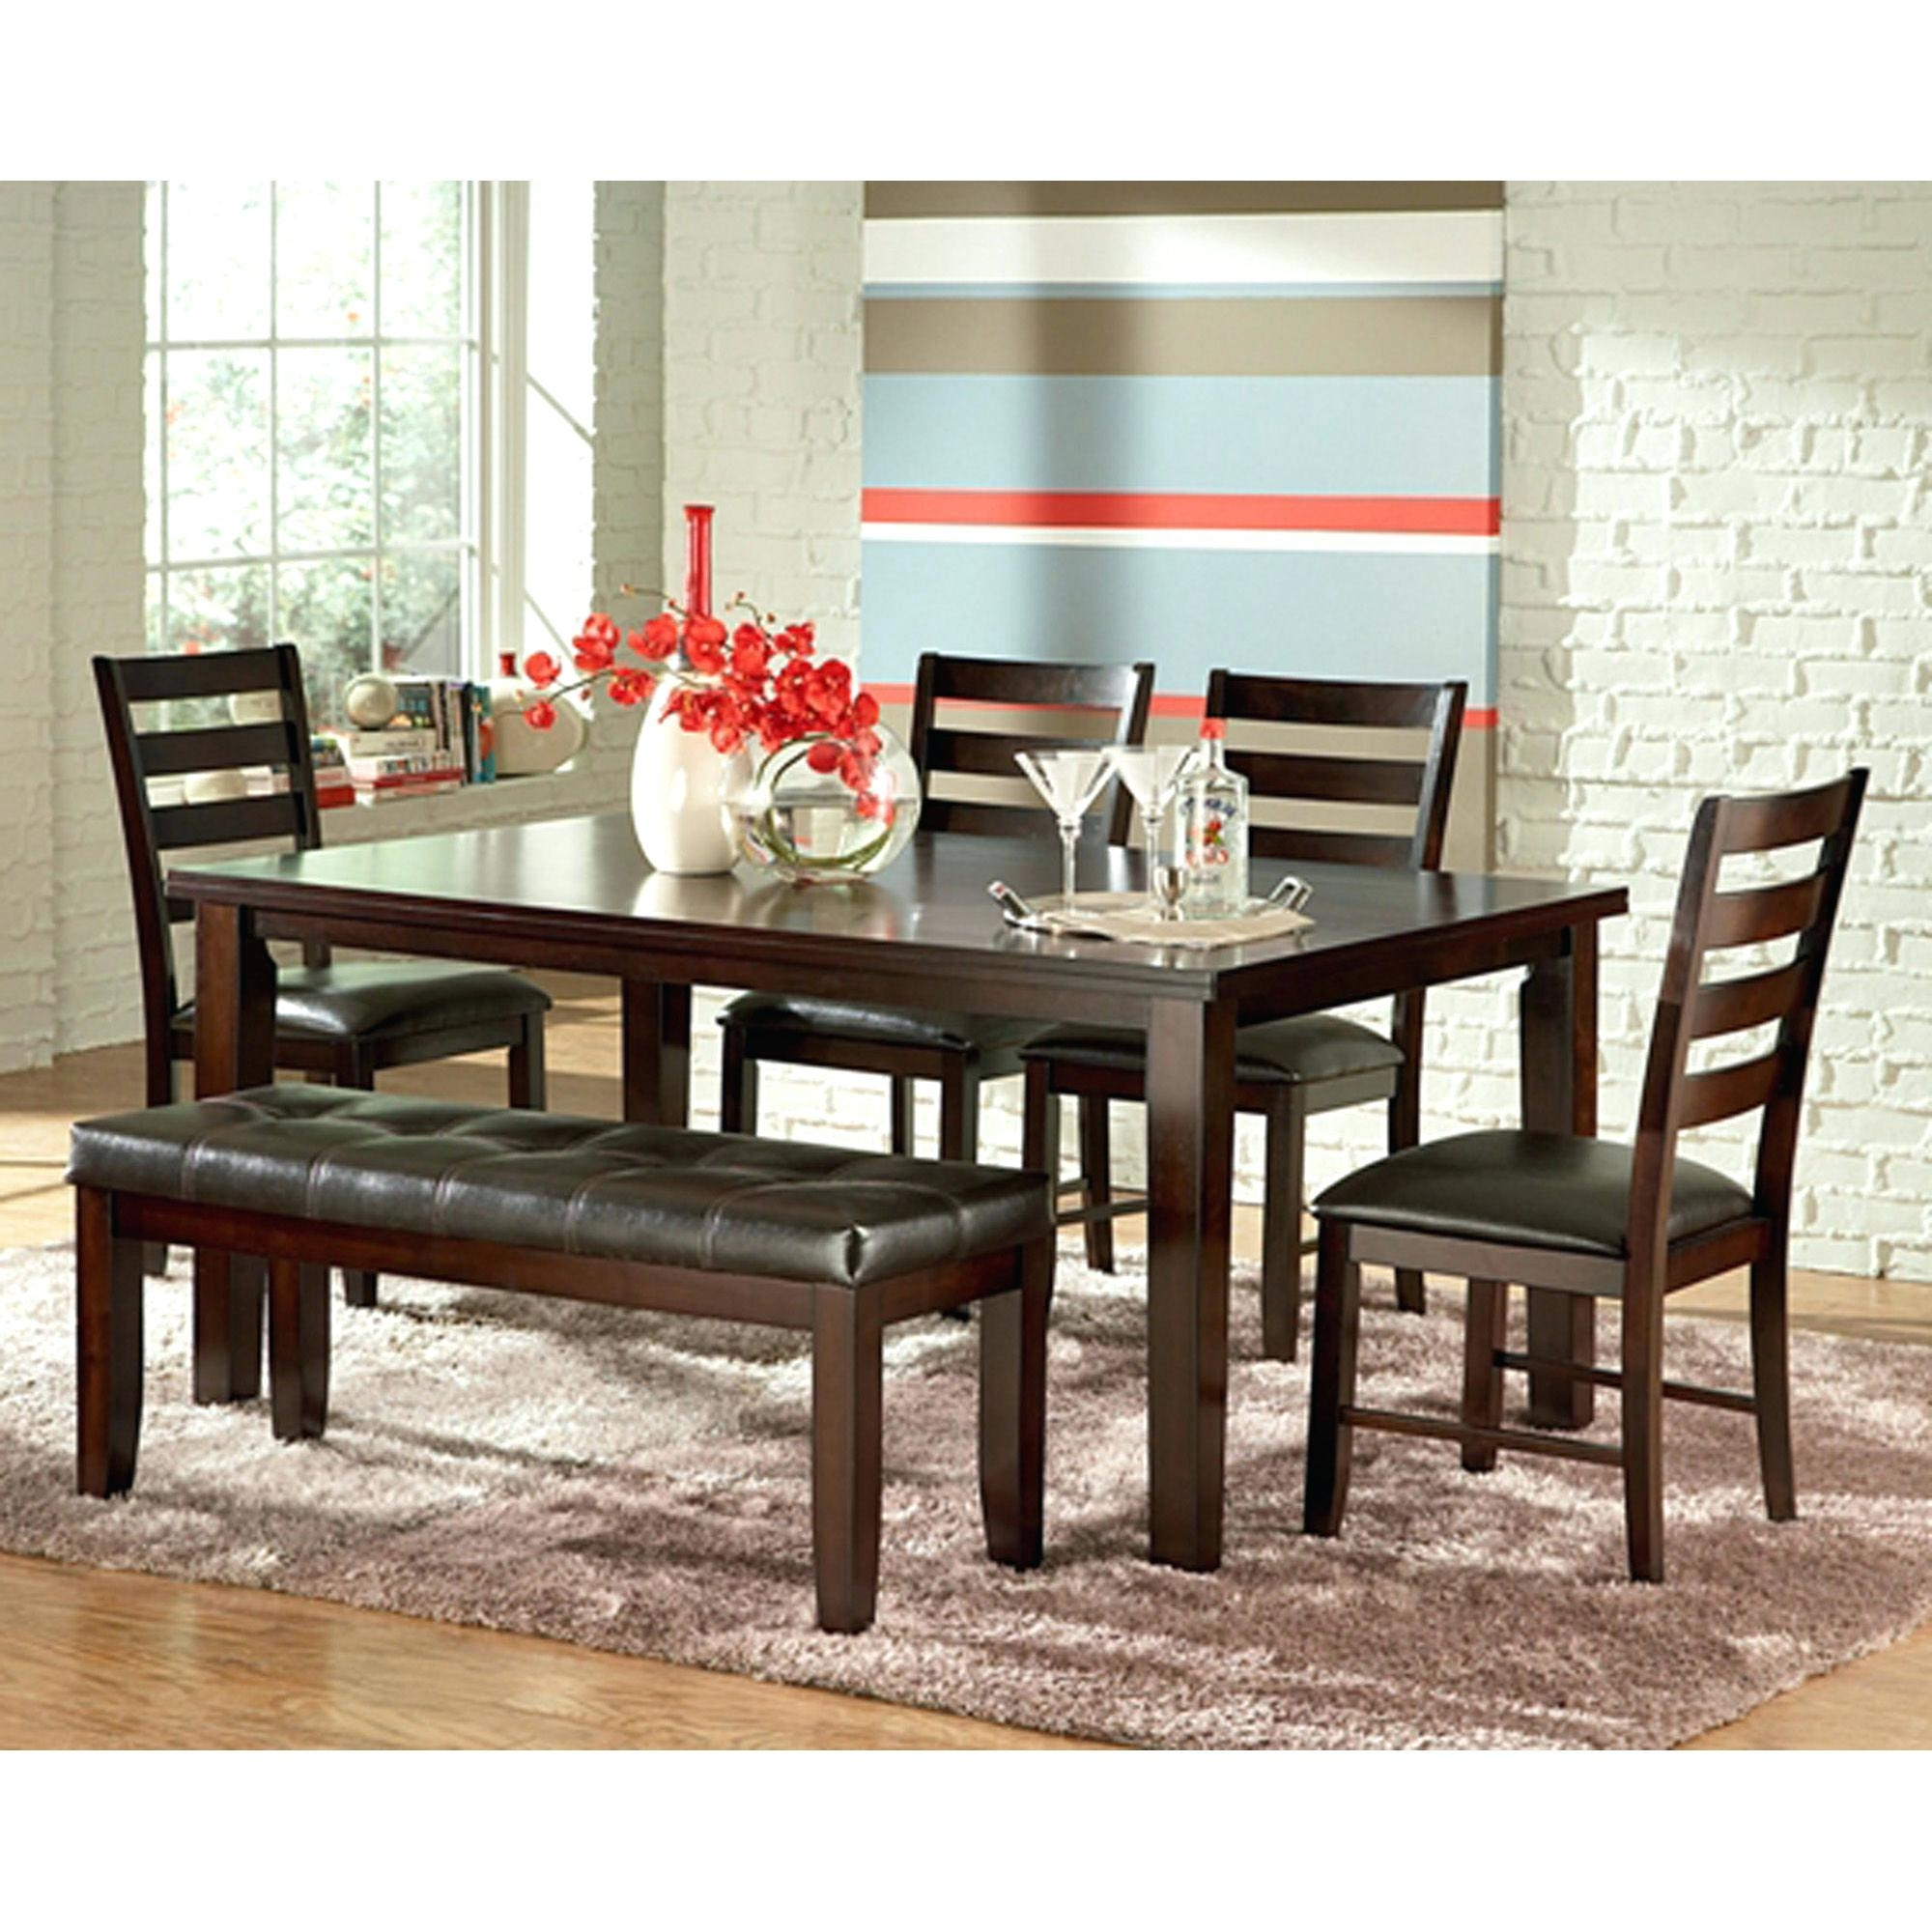 6 Piece Kitchen Table Mallard 6 Piece Extension Dining Set Inside Widely Used Mallard 6 Piece Extension Dining Sets (Gallery 19 of 25)